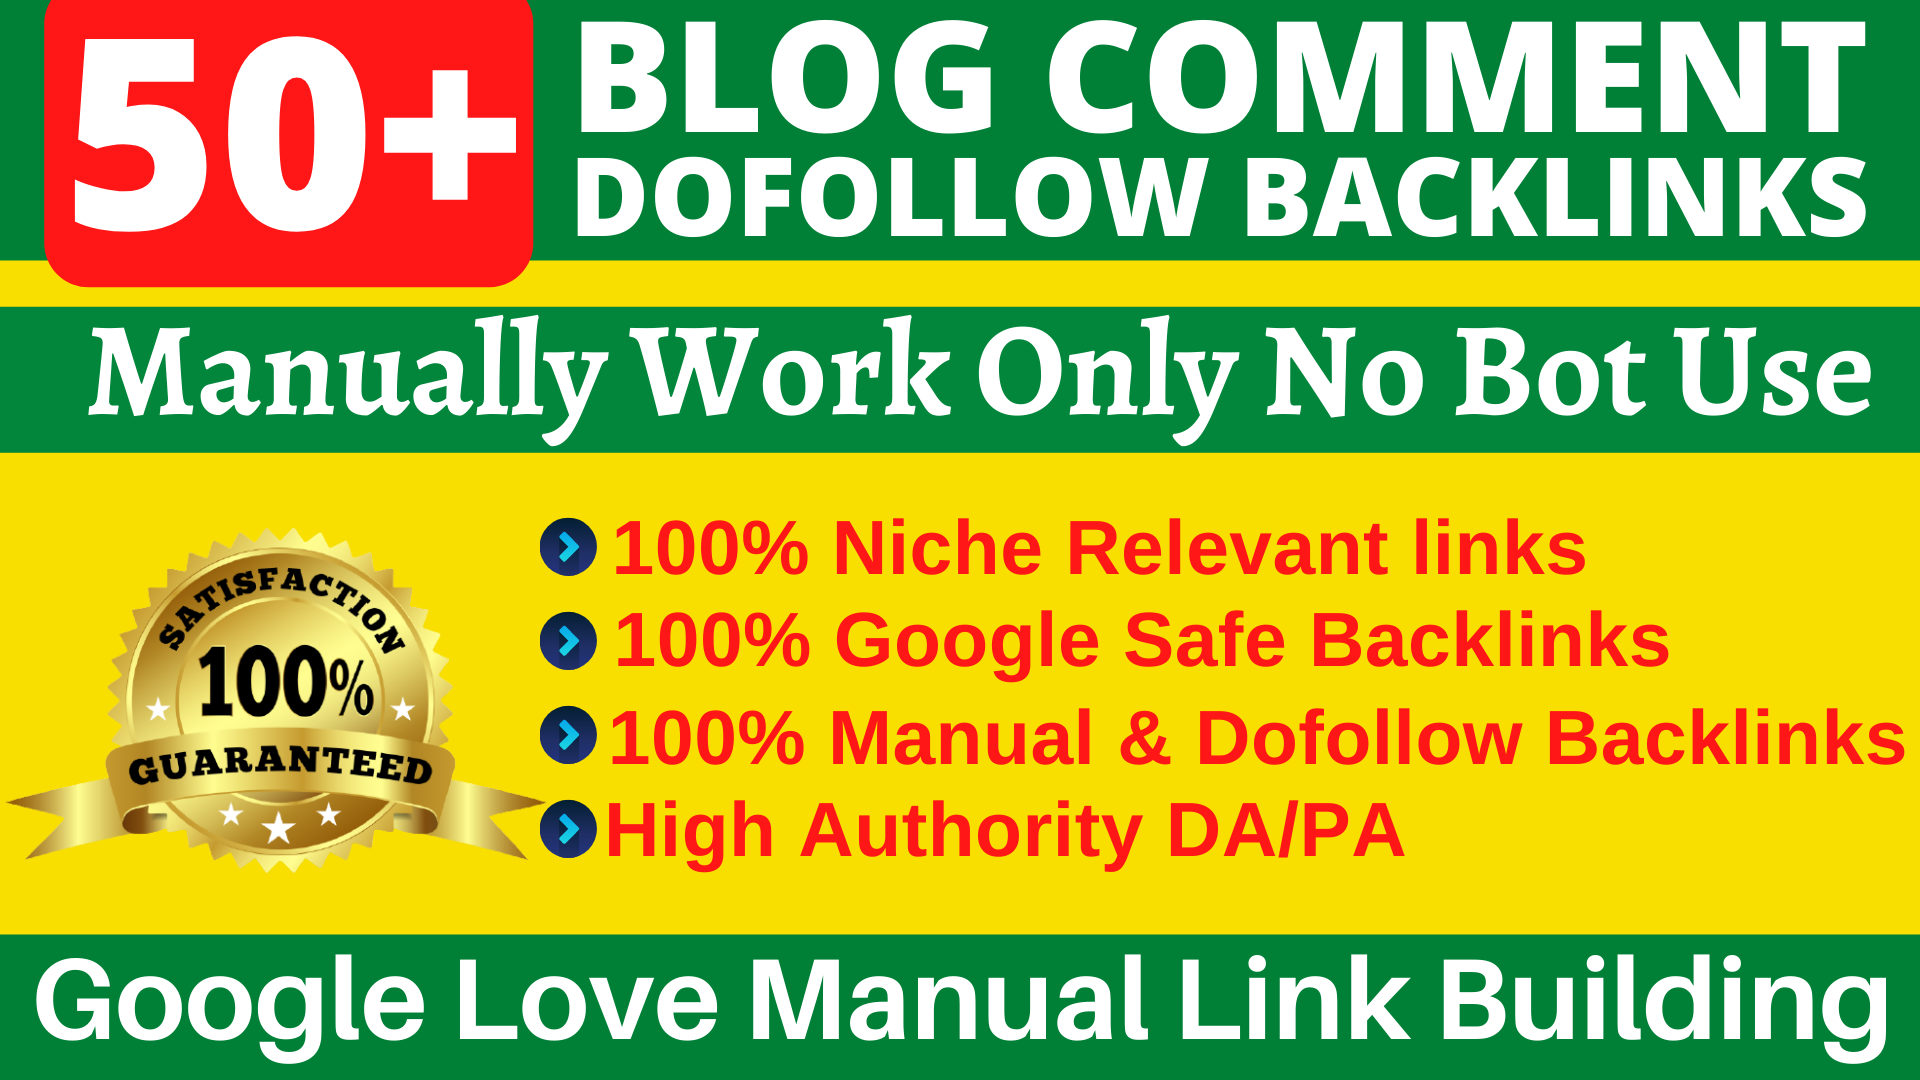 50 Dofollow Backlinks Blog Comments High DA Website Ranking & Link Building Service